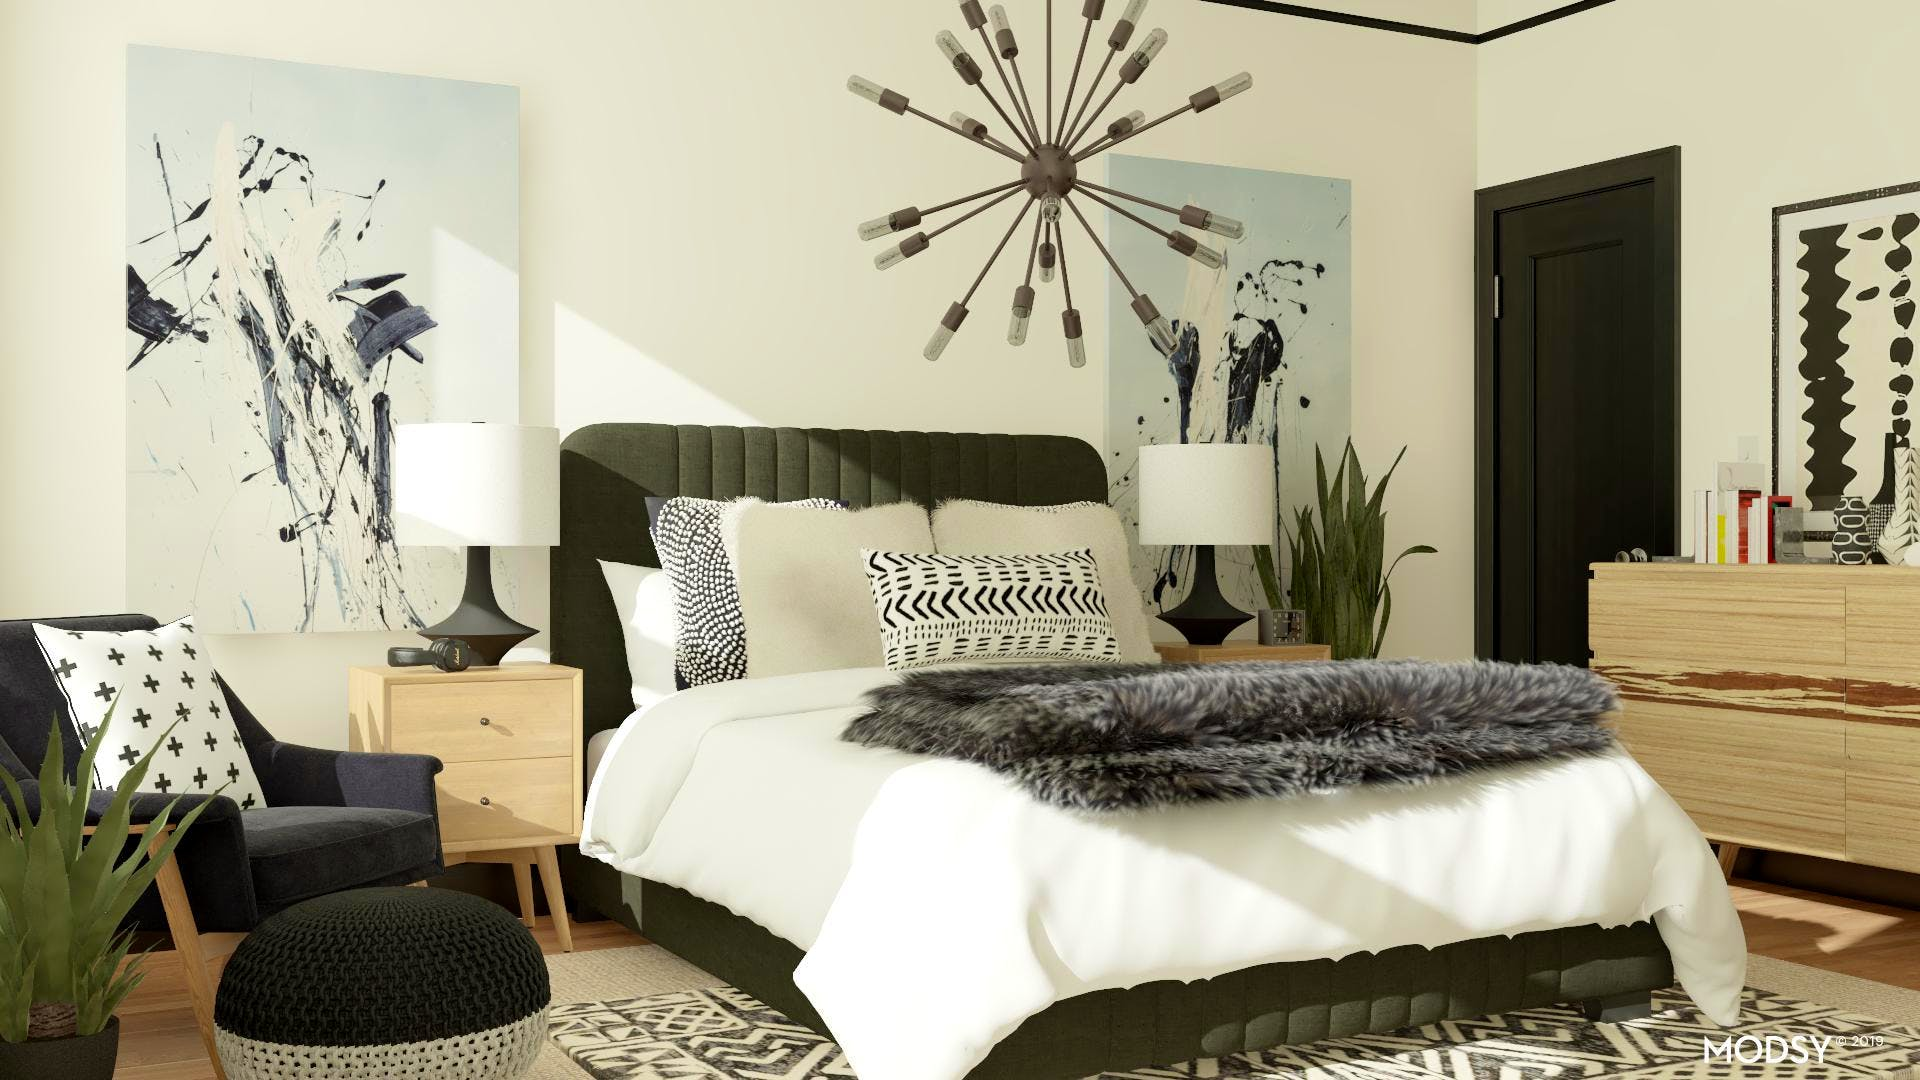 Masculine Mid-Century Modern Bedroom With Black & White Accents